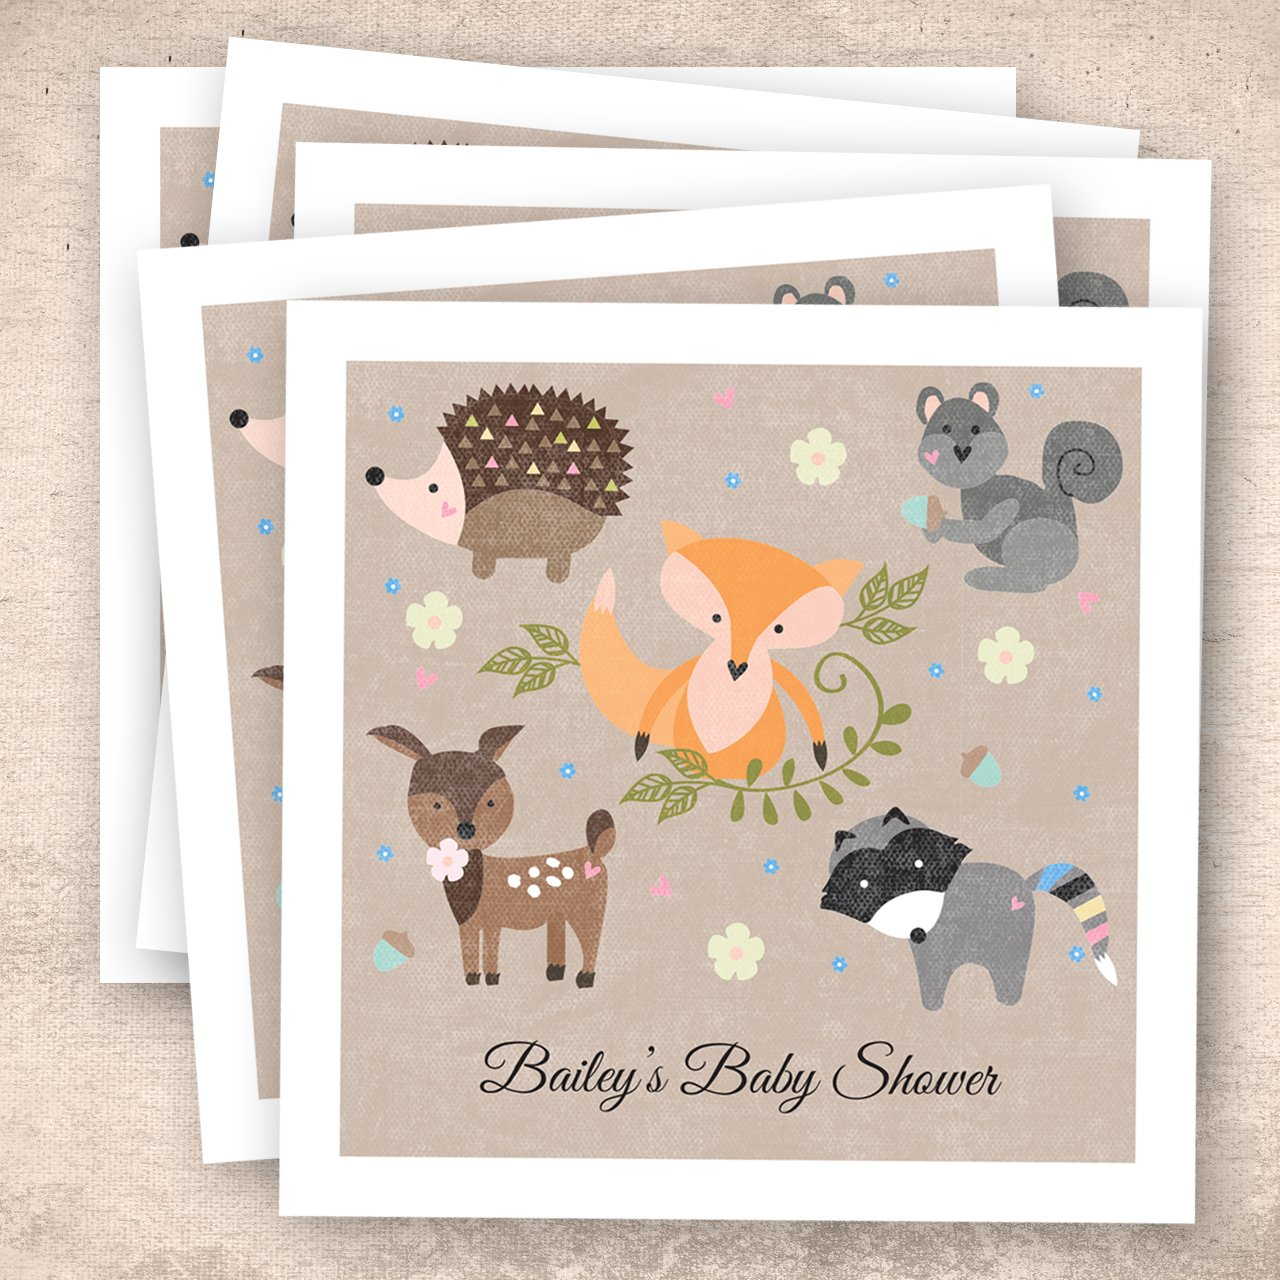 Woodland Animals Personalized Beverage Cocktail Napkins - 100 Custom Printed Paper Napkins by Canopy Street (Image #6)